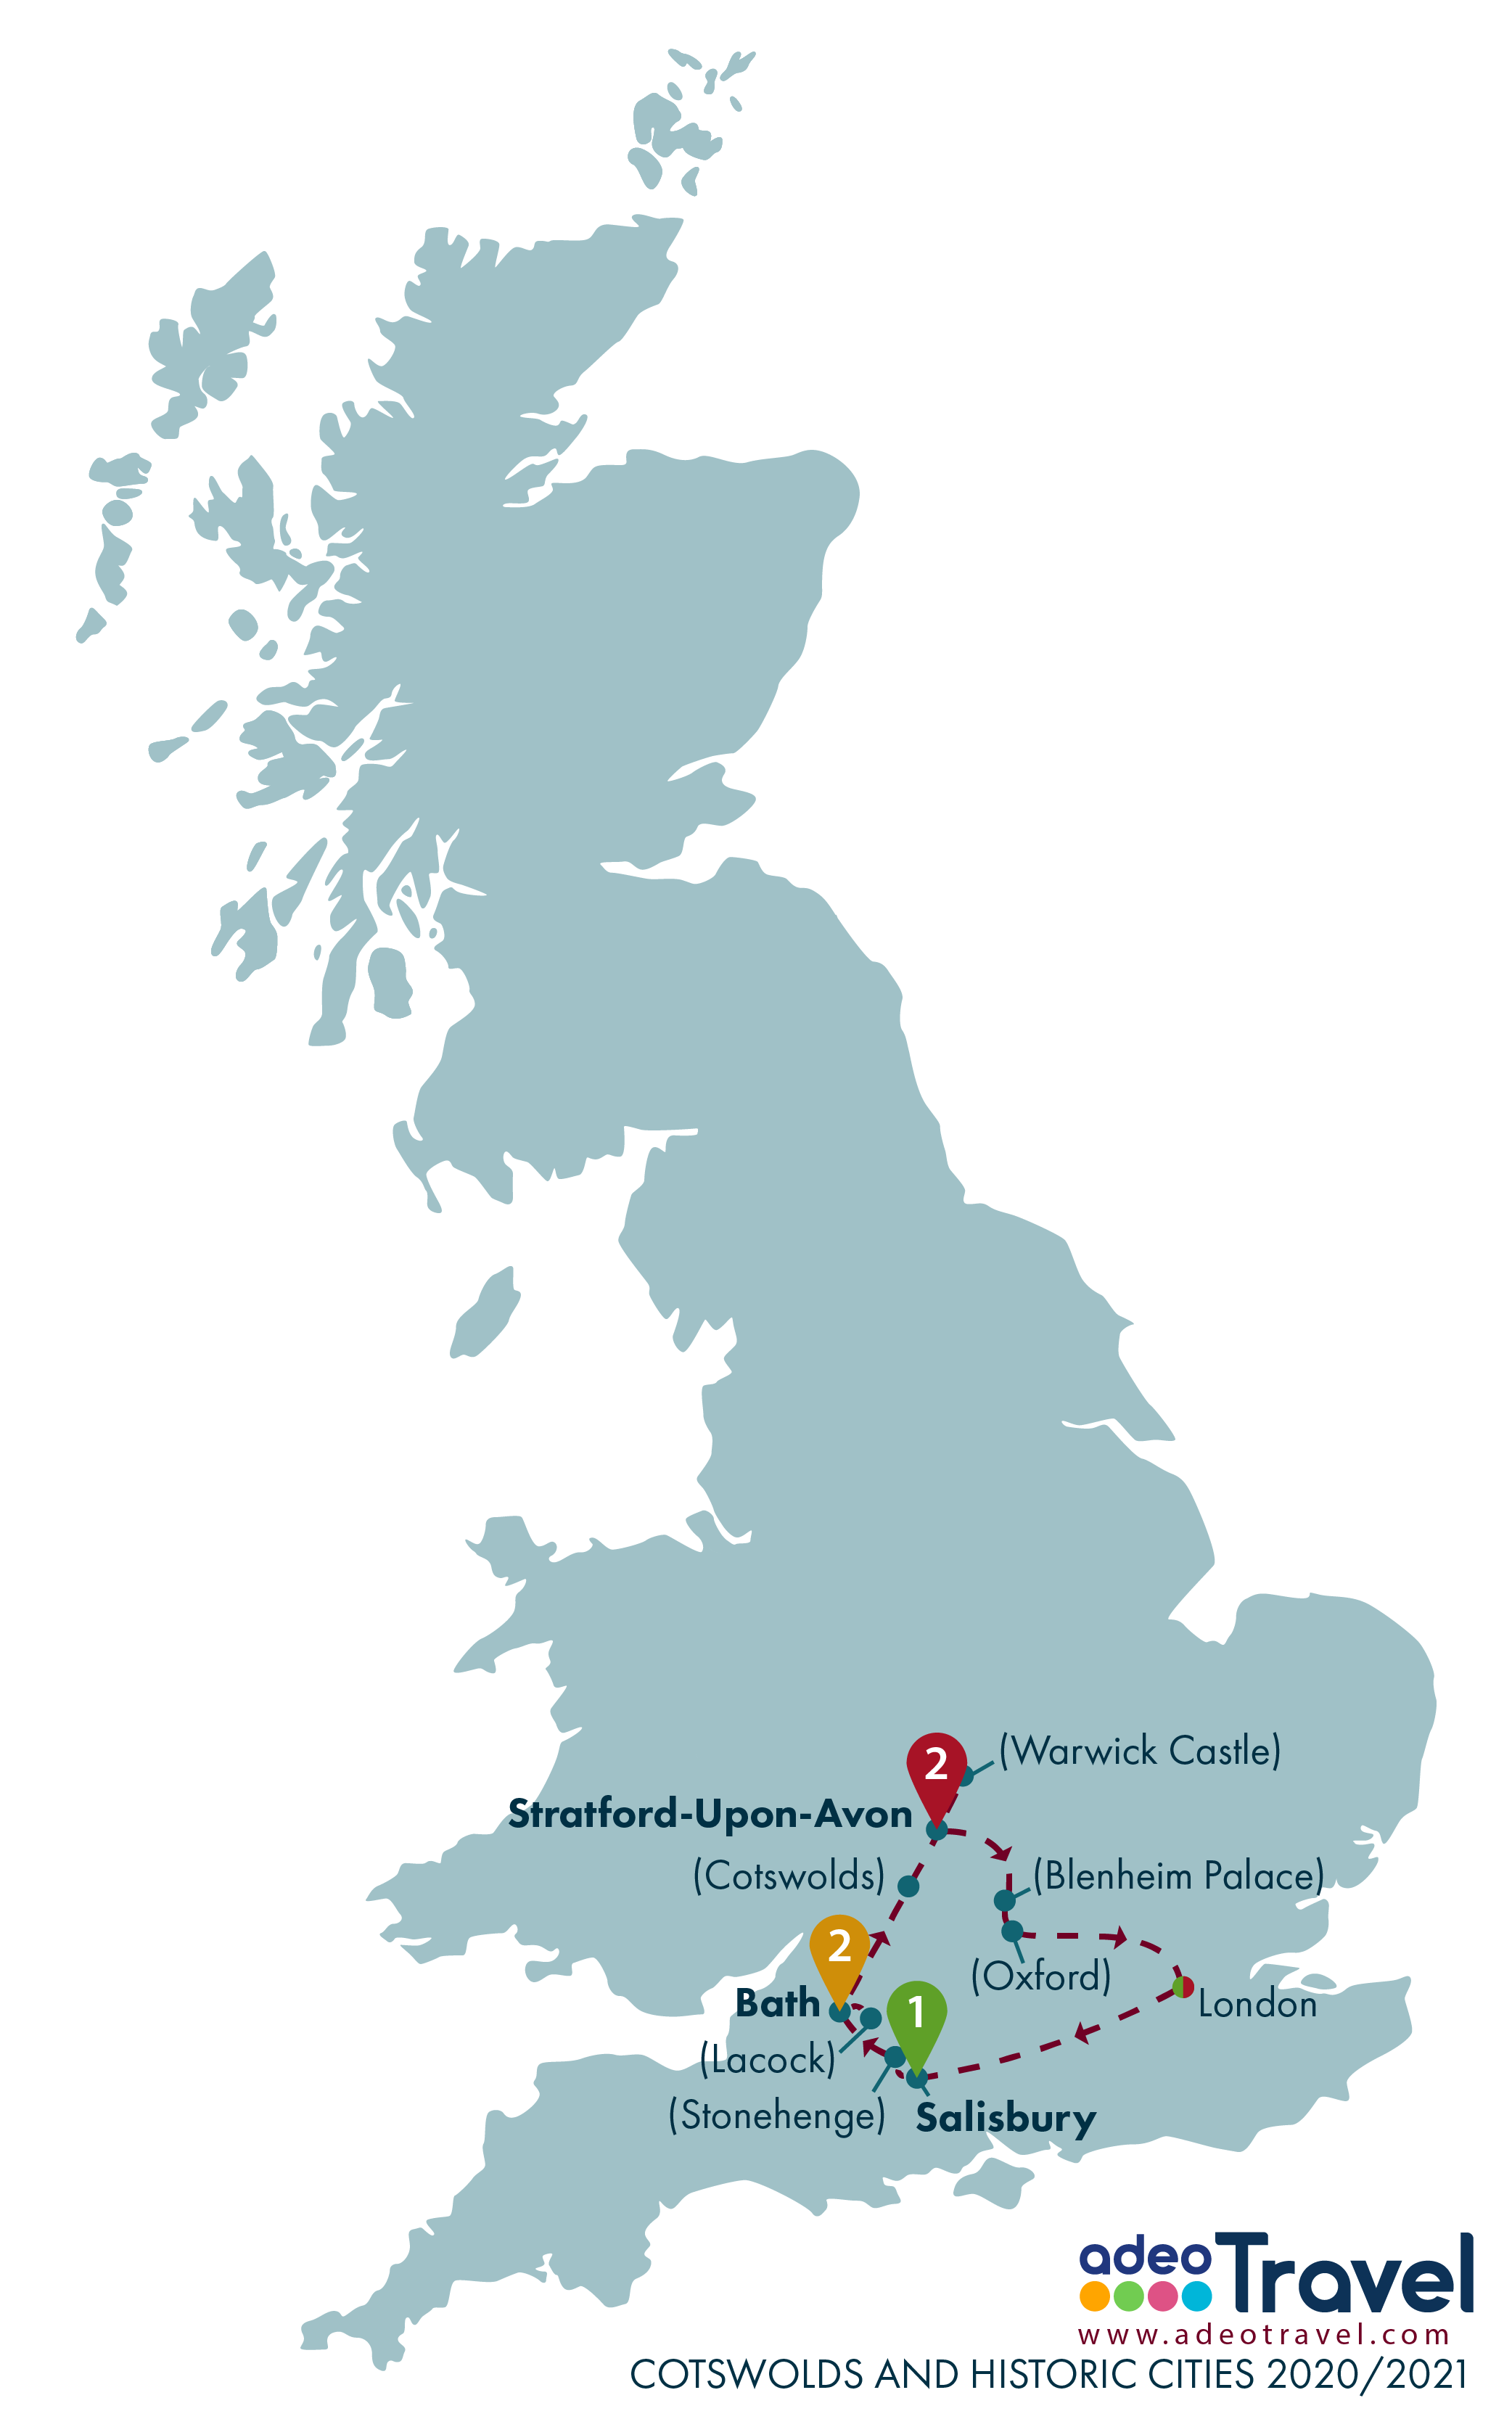 Map - Cotswolds and Historic Cities 2020 2021